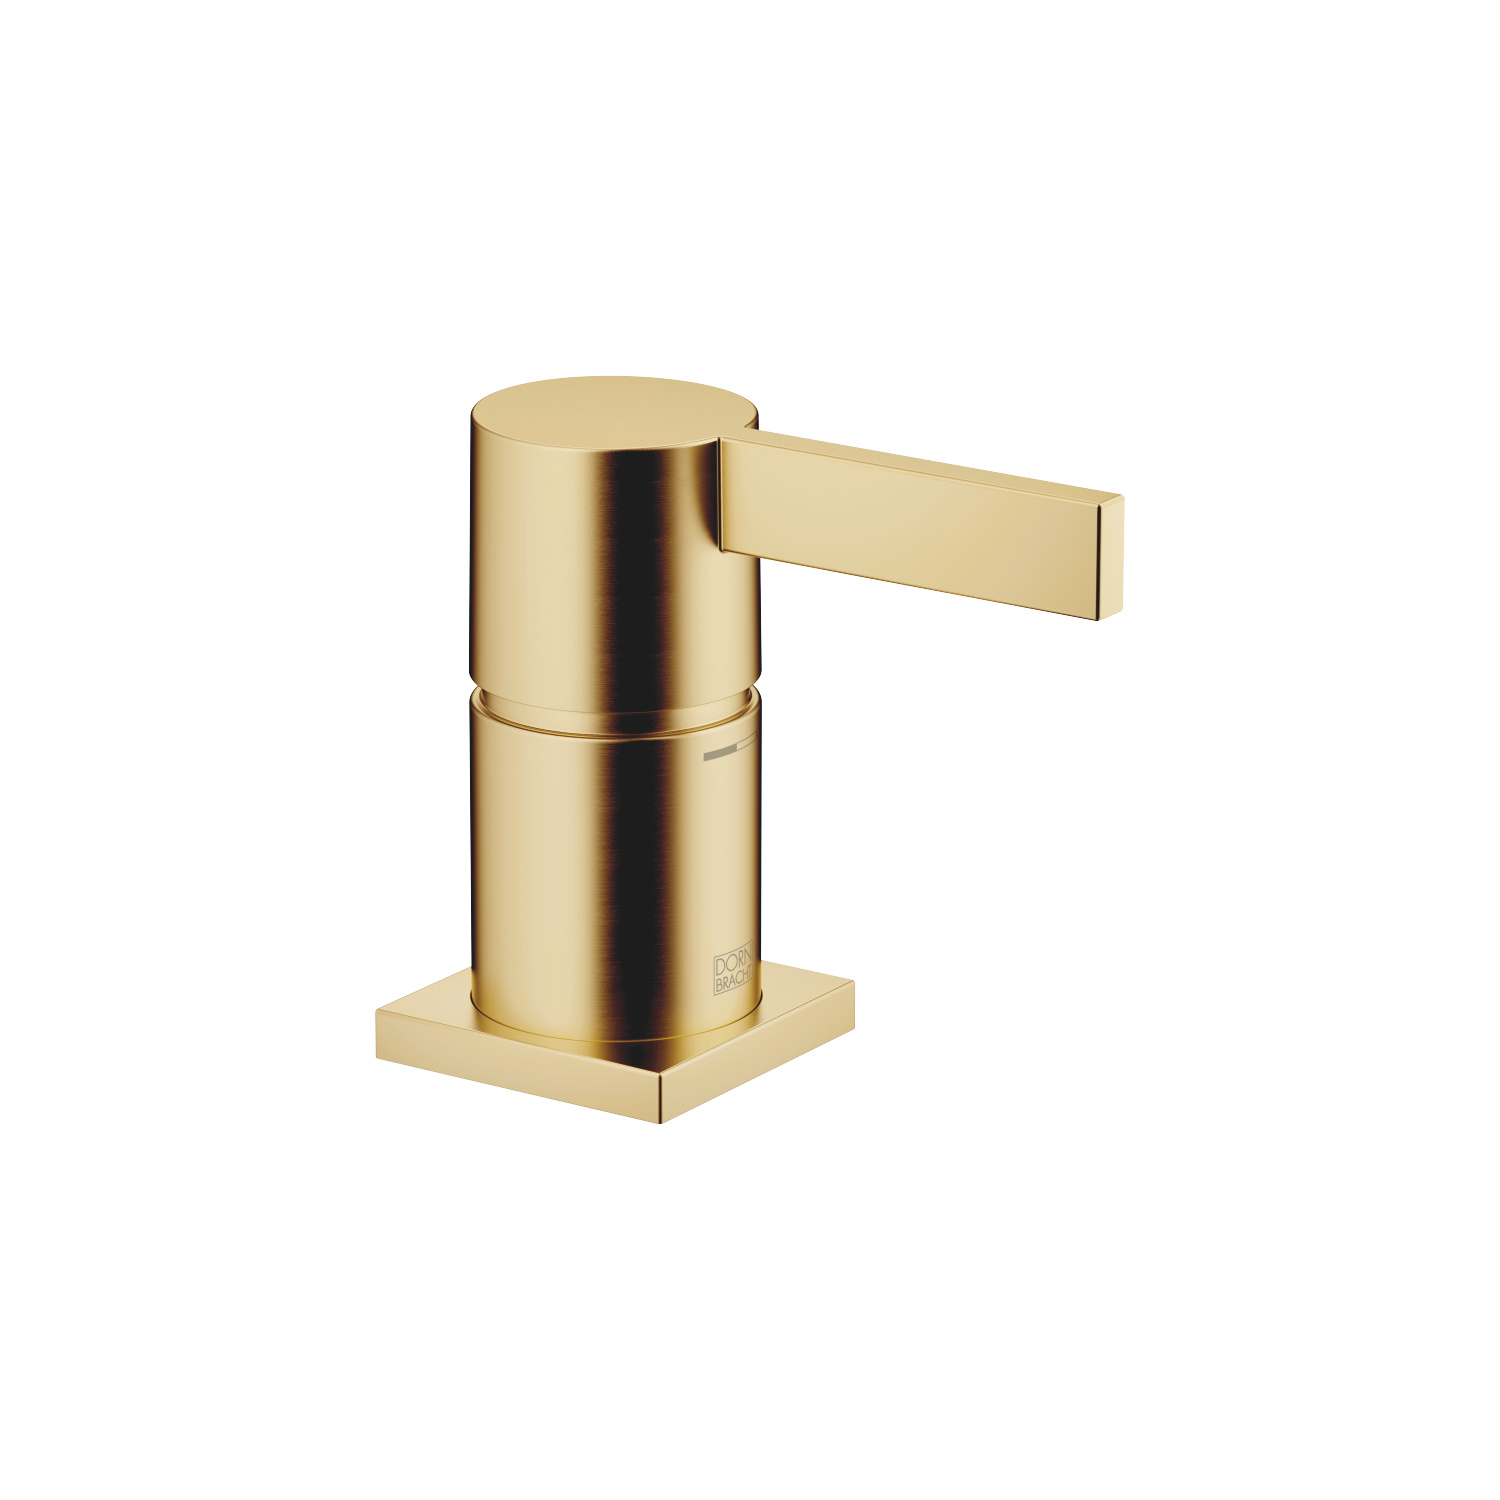 Single-lever bath mixer for bath rim or tile edge installation - brushed Durabrass